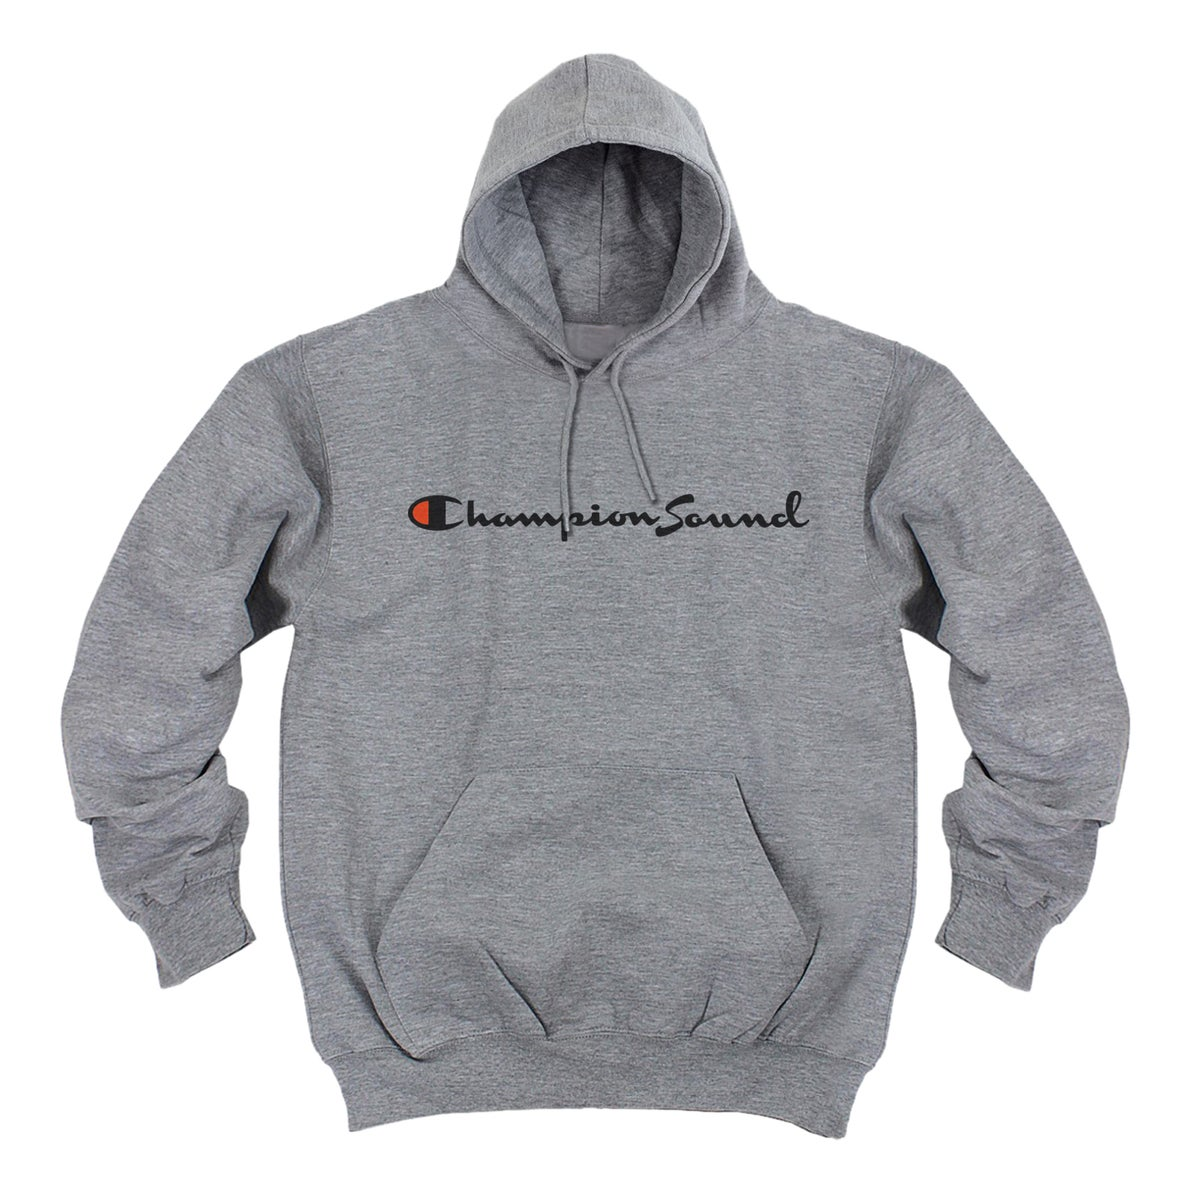 Image of Champion Sound hoodie (Grey)